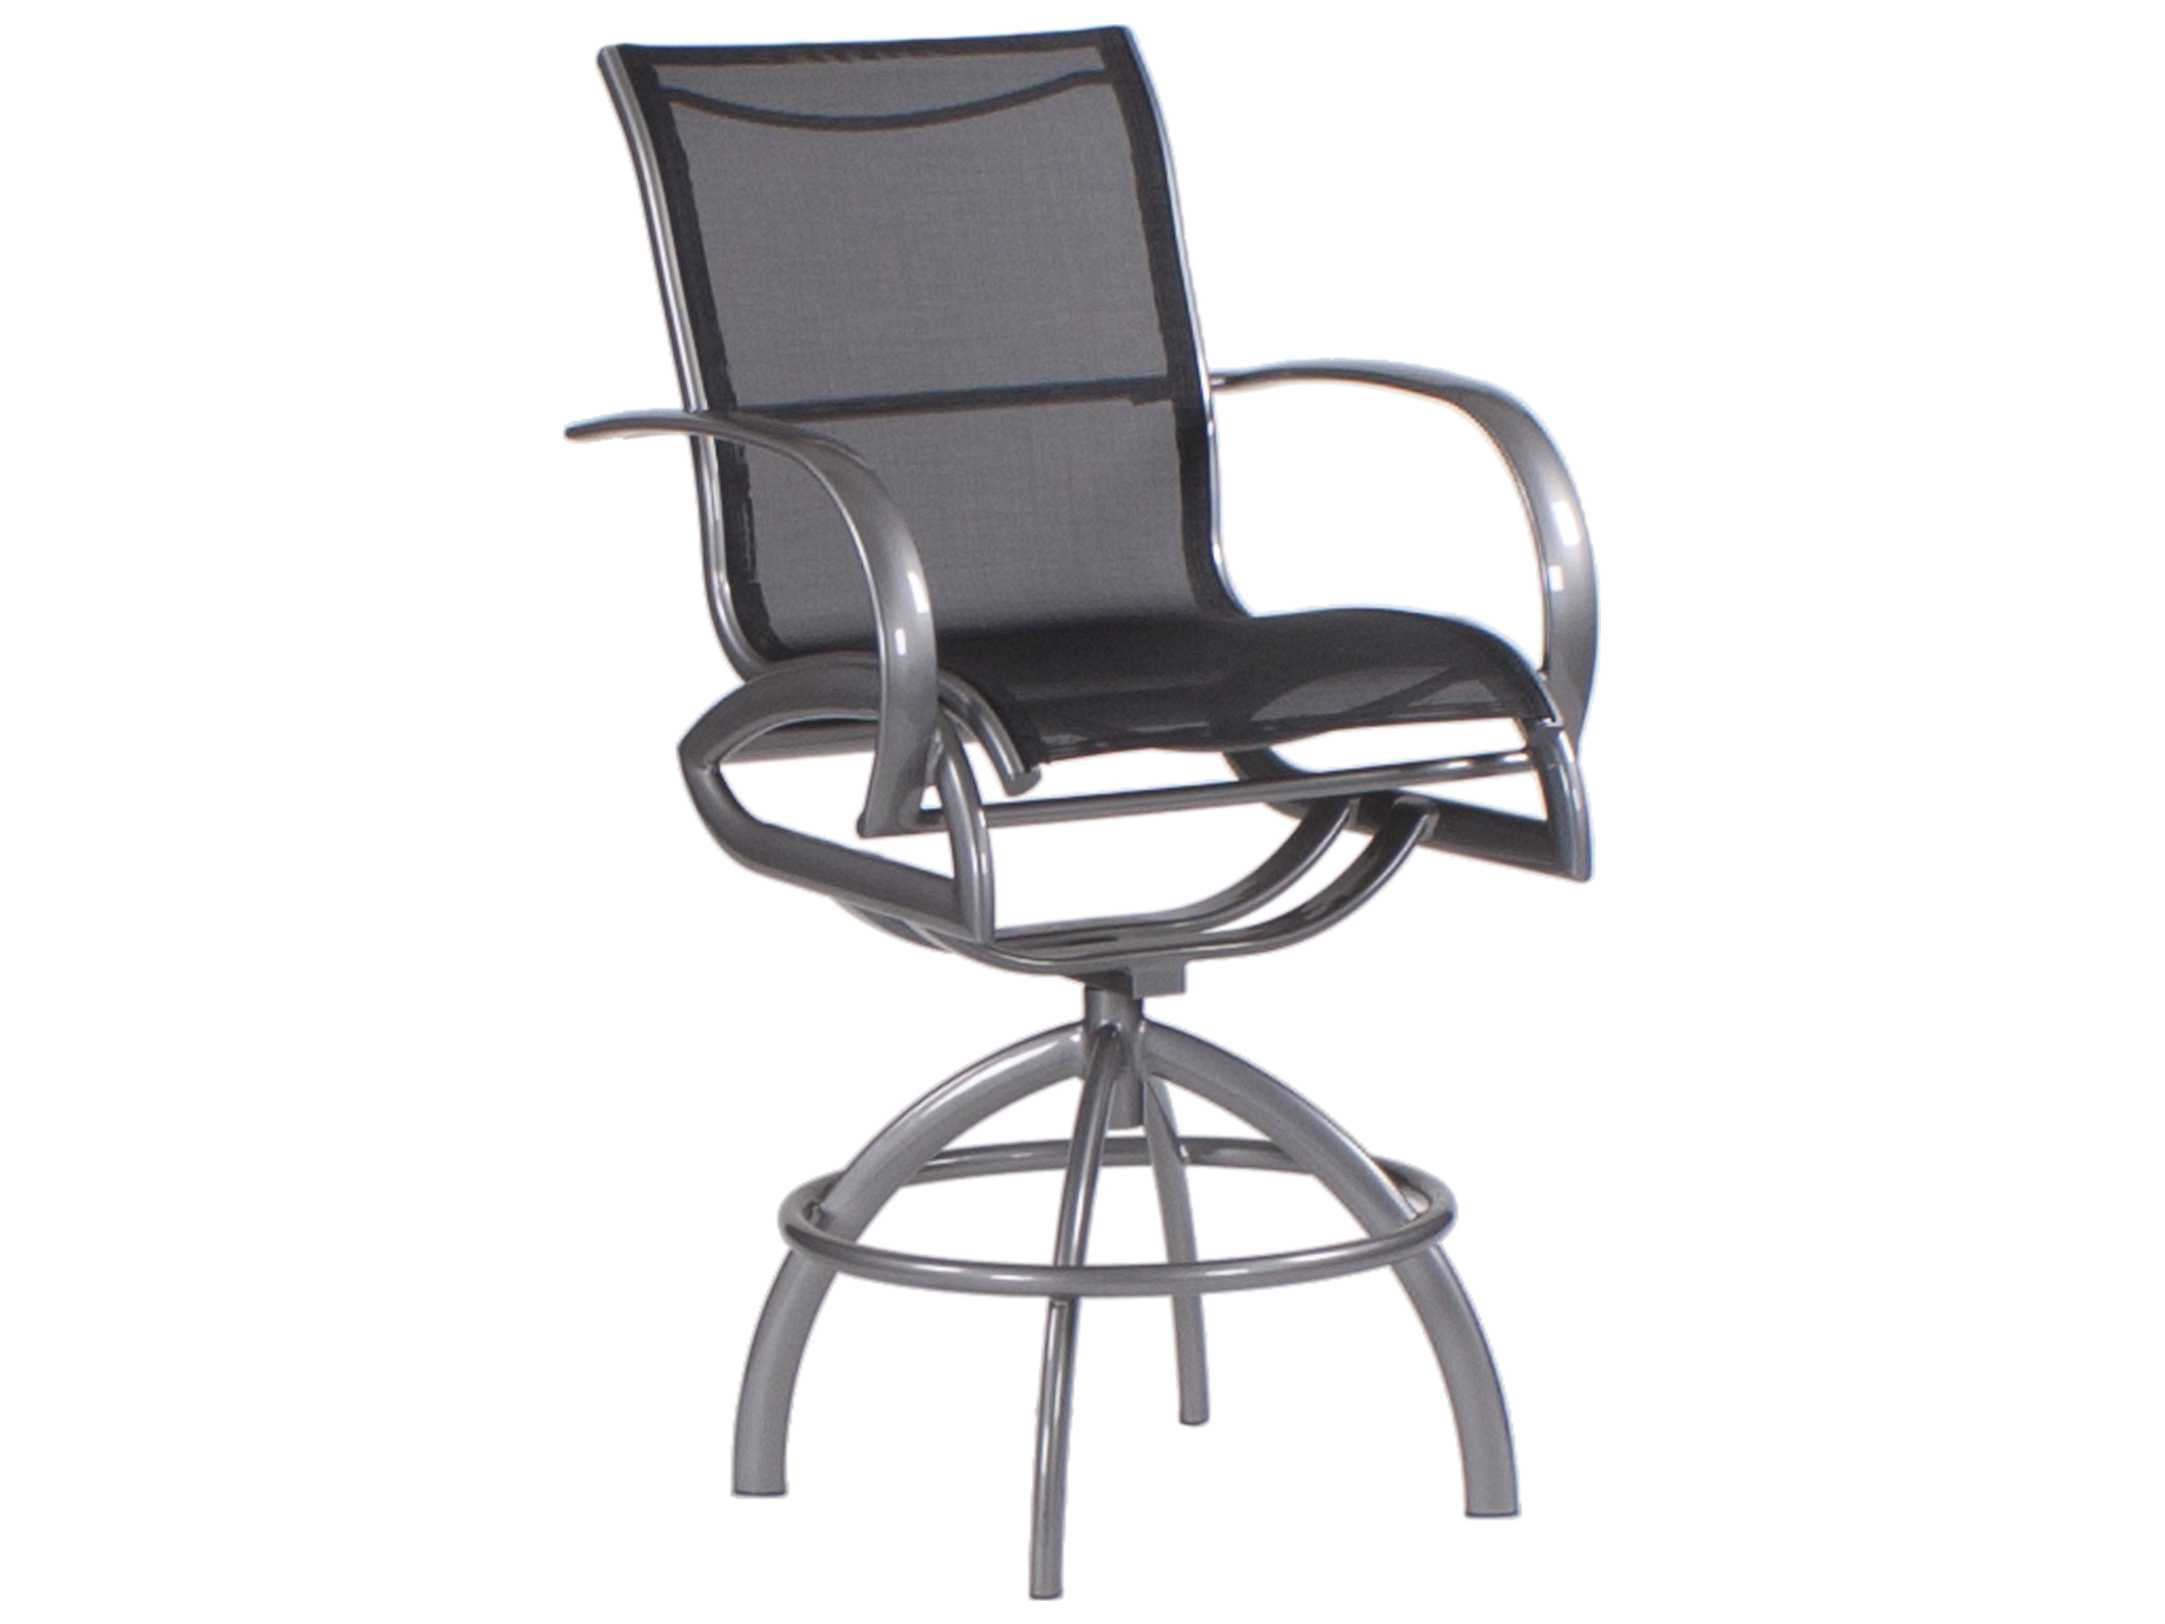 Koverton Modone Aluminum Swivel Bar Stool K 154 08